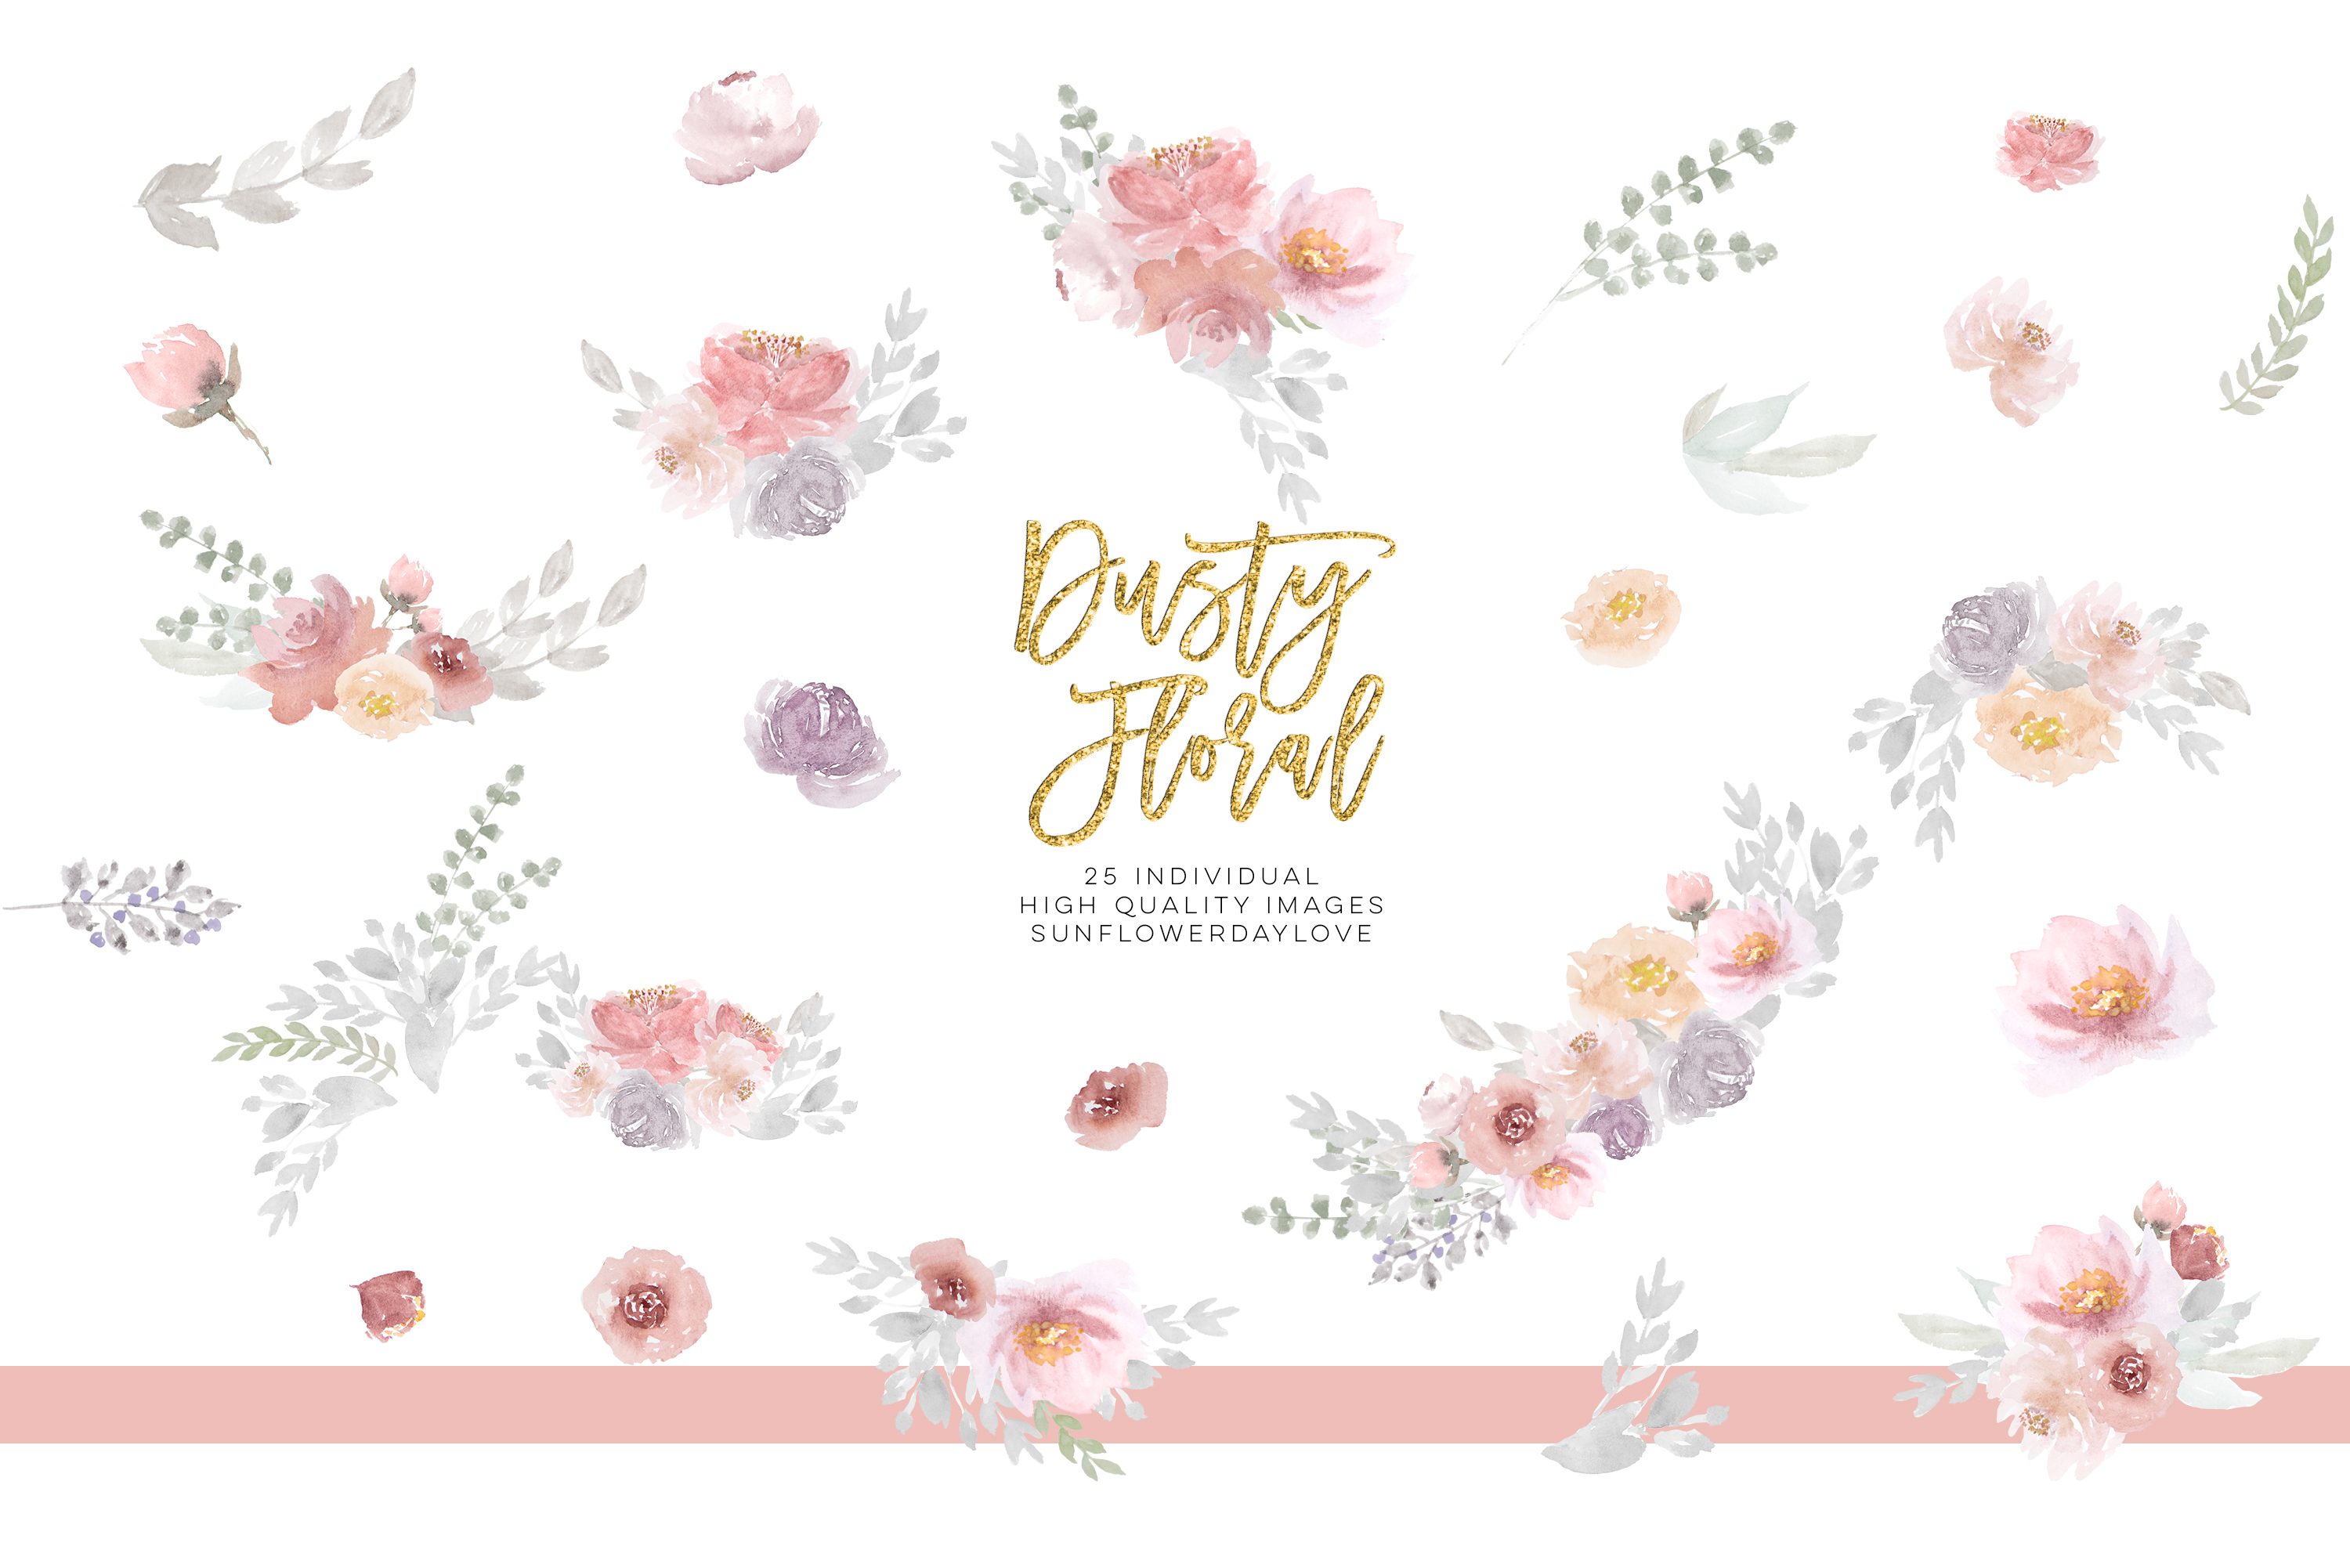 Dusty rose floral clipart, Wedding Invitation Clip Art example image 3